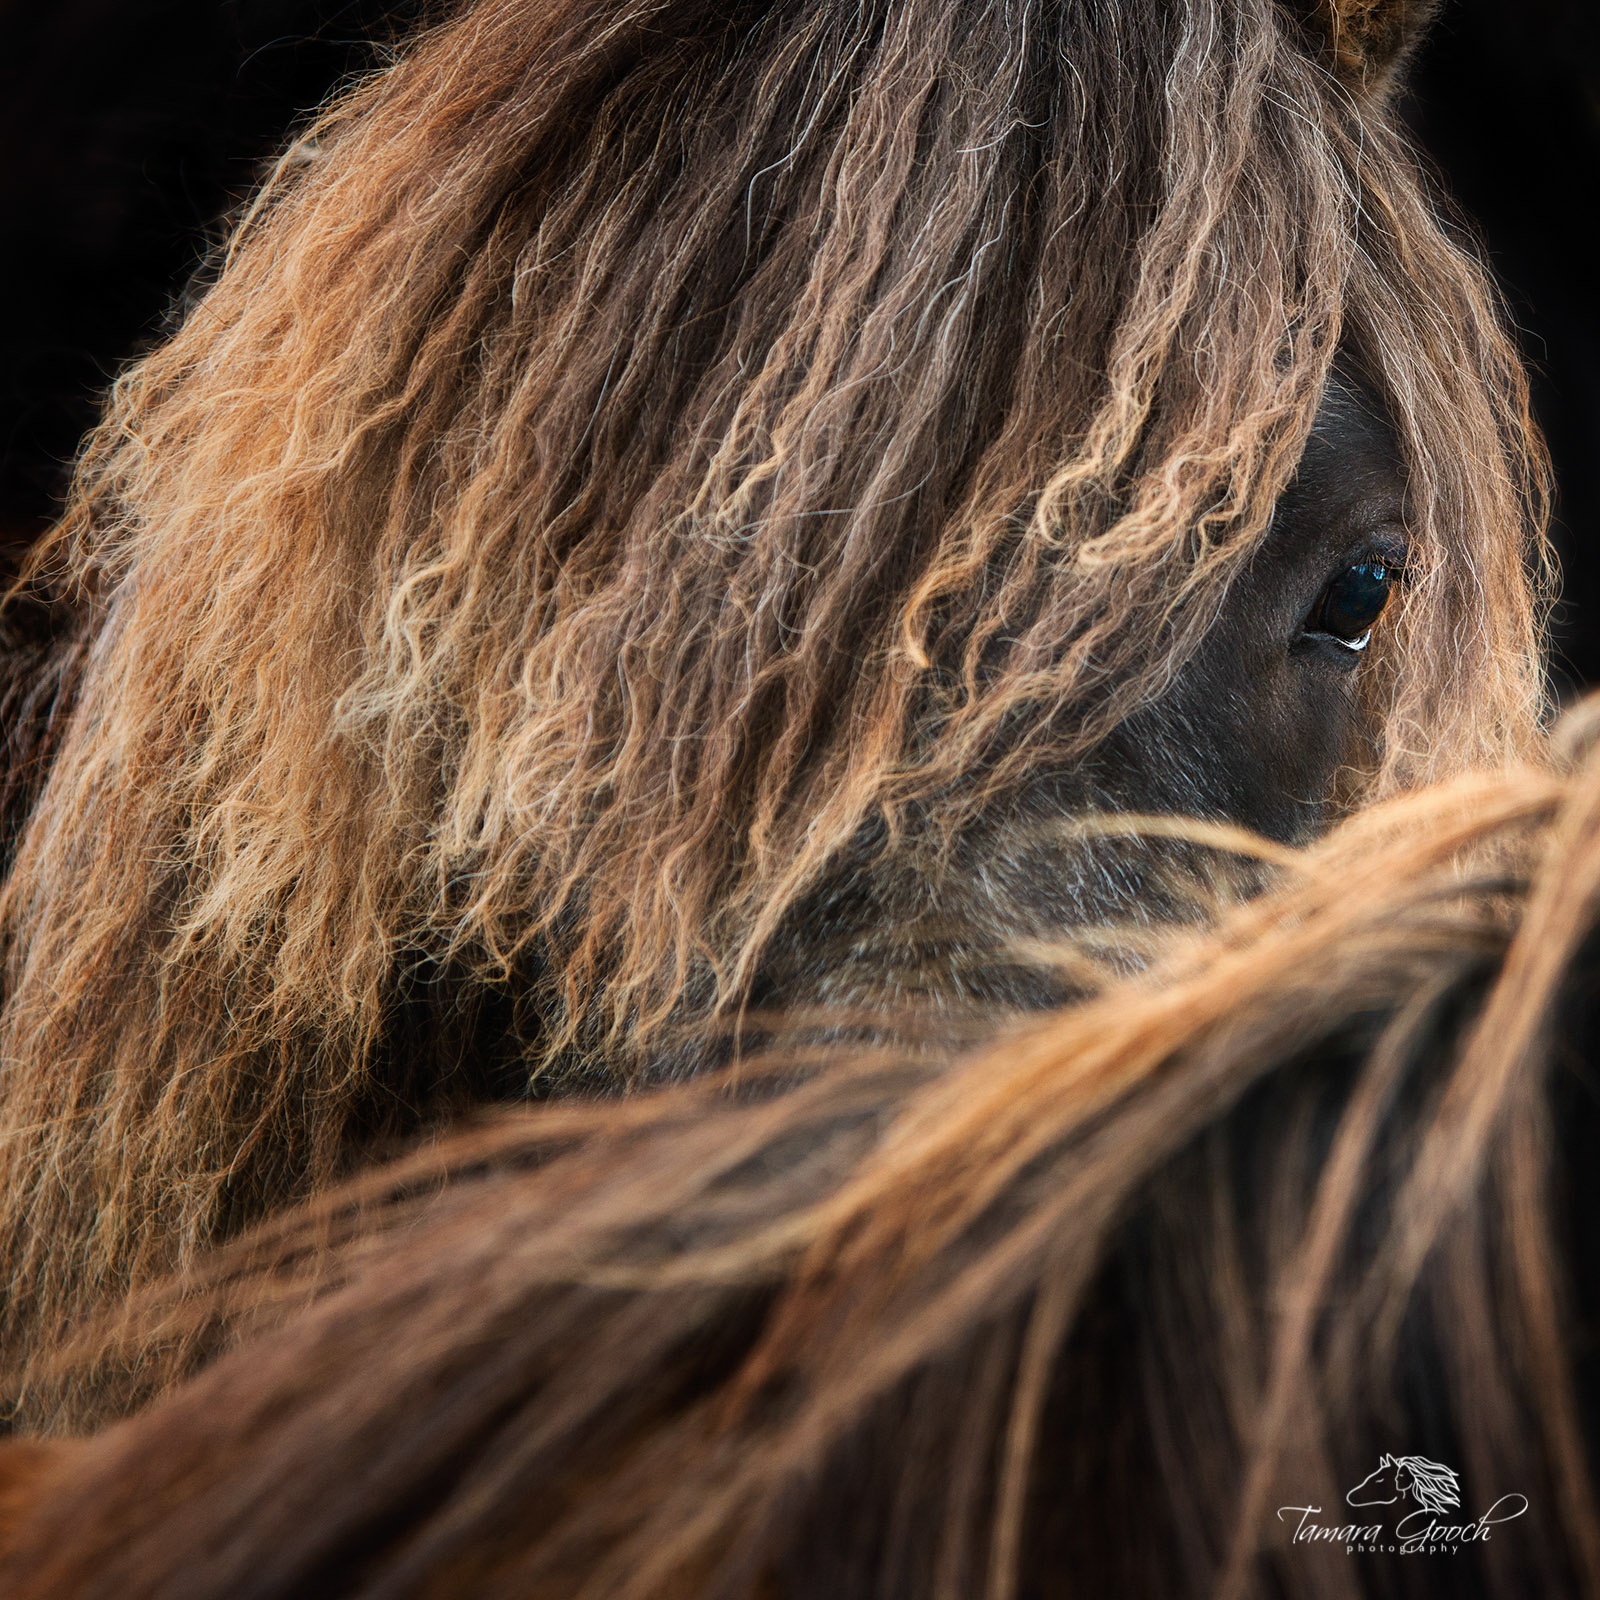 A photo of an Icelandic horse peaking over the neck of another.